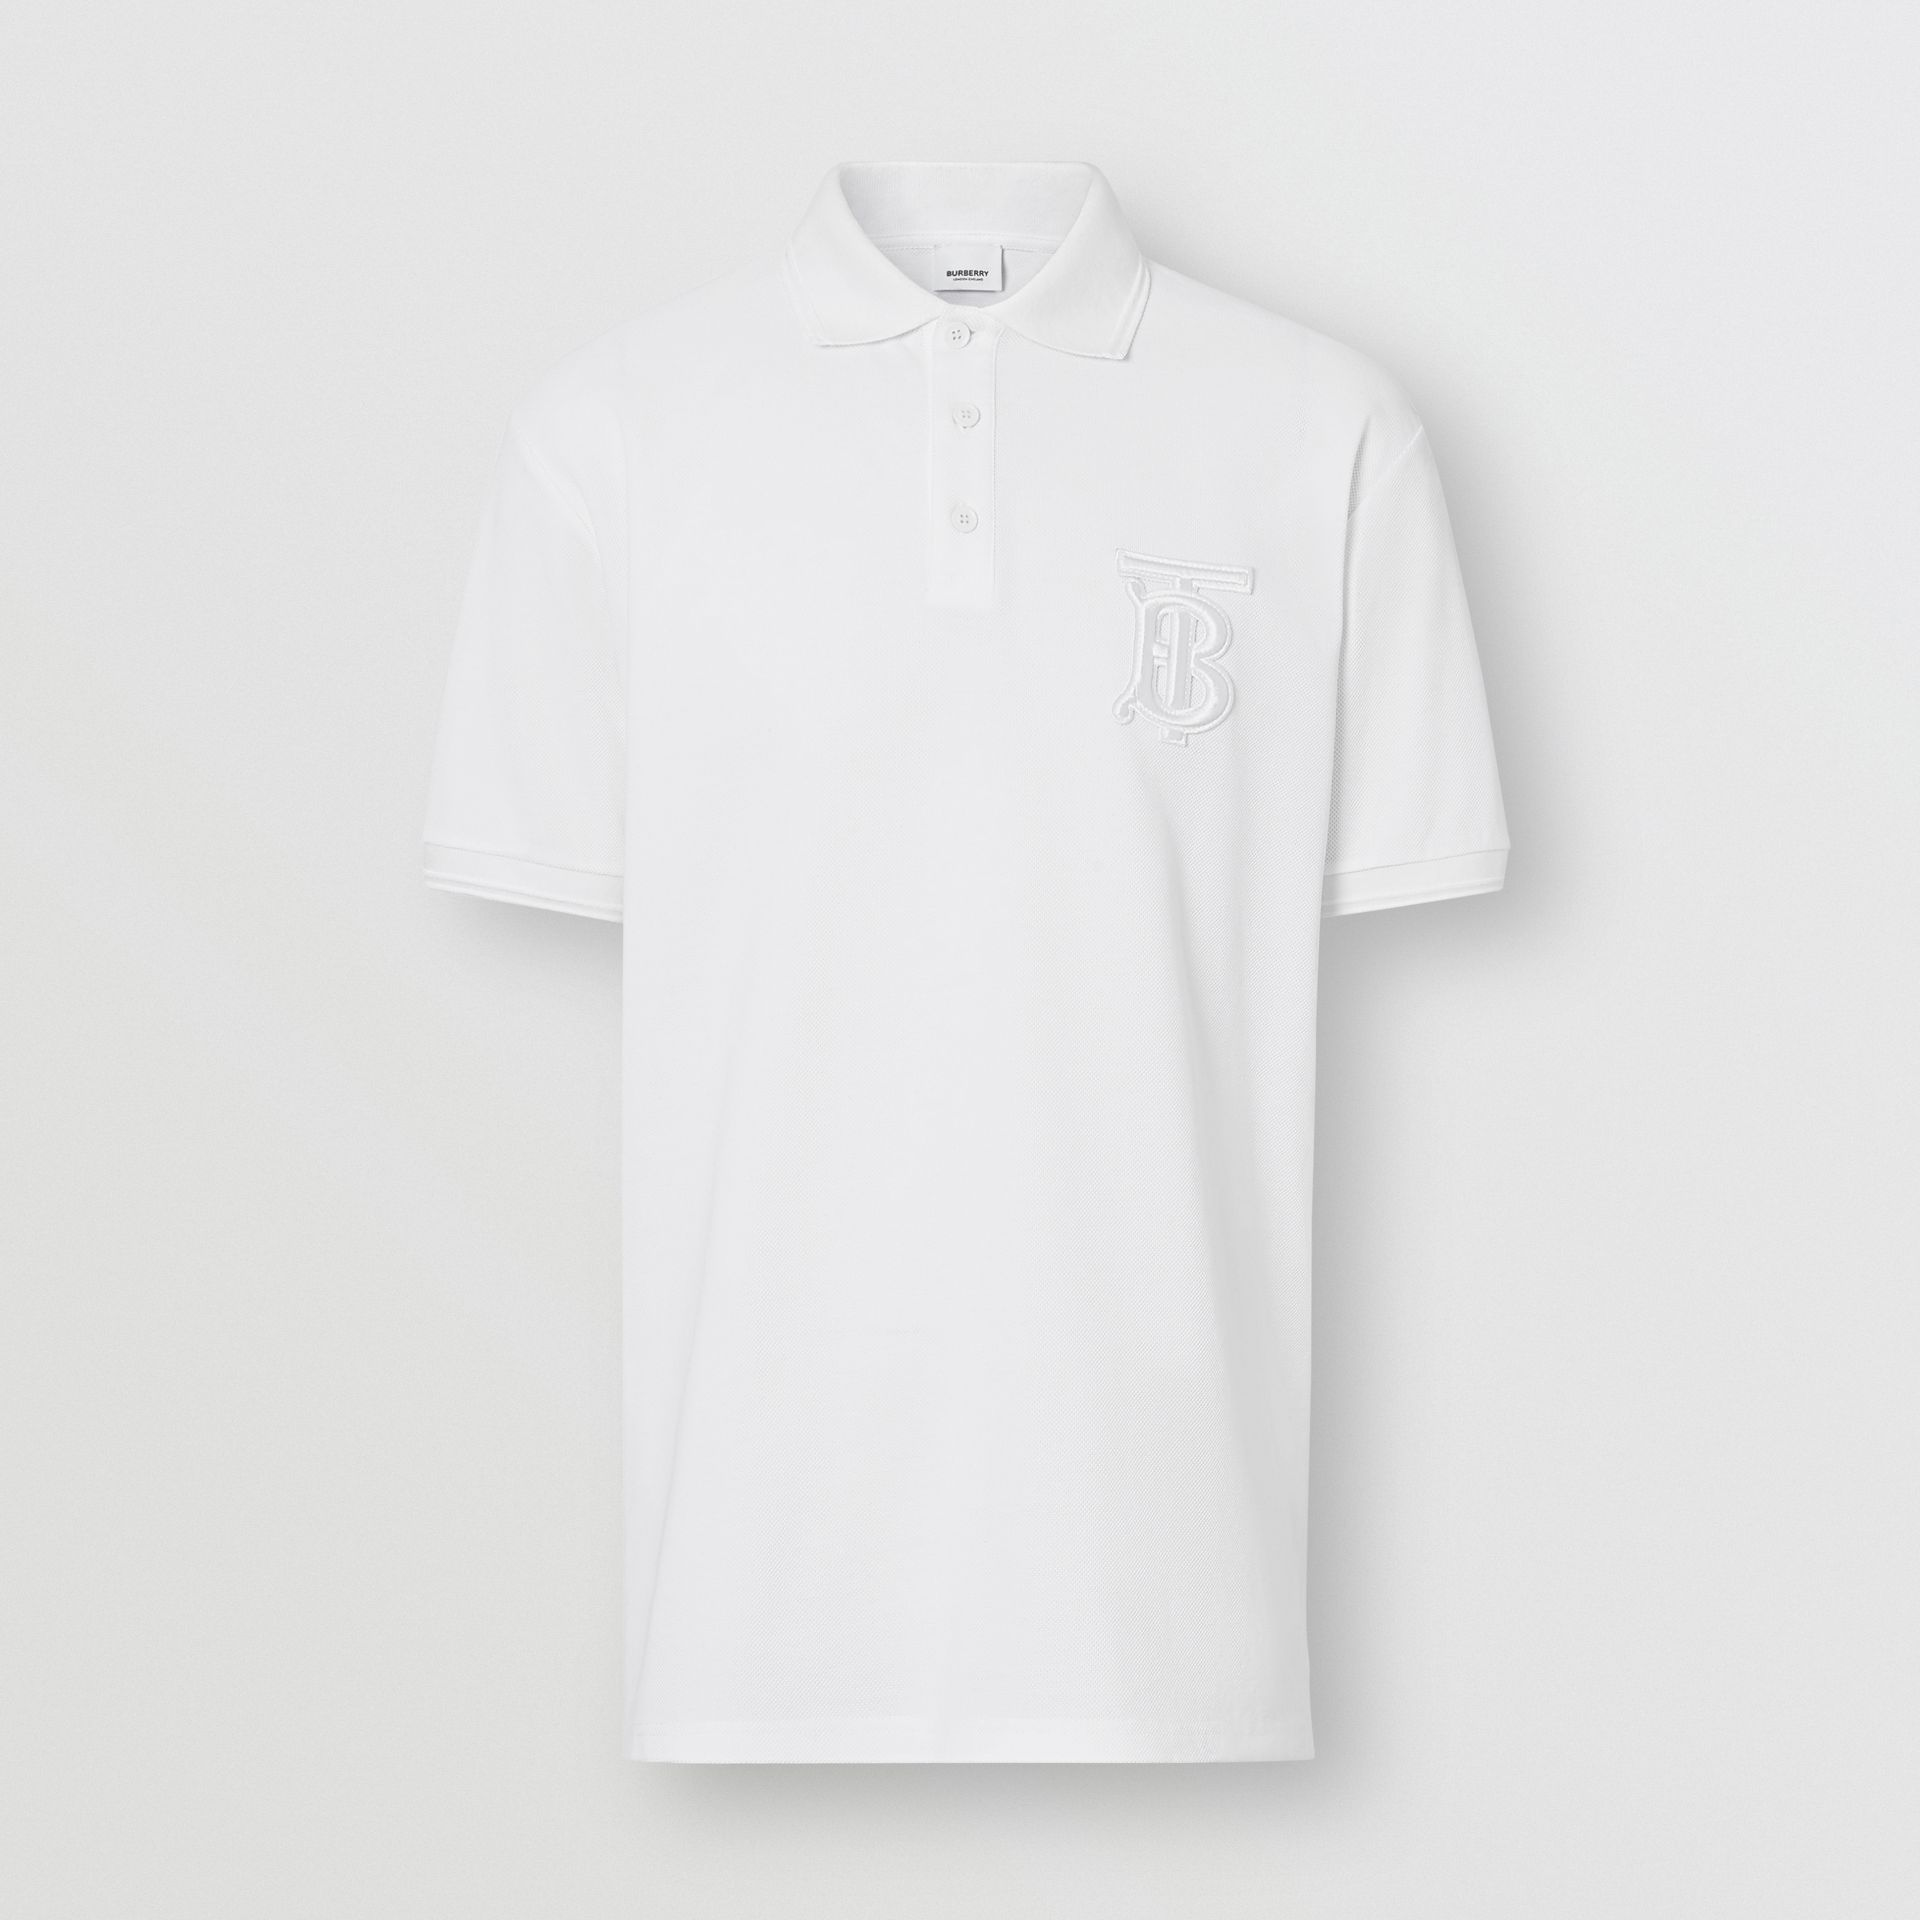 Monogram Motif Cotton Piqué Oversized Polo Shirt in White - Men | Burberry - gallery image 2